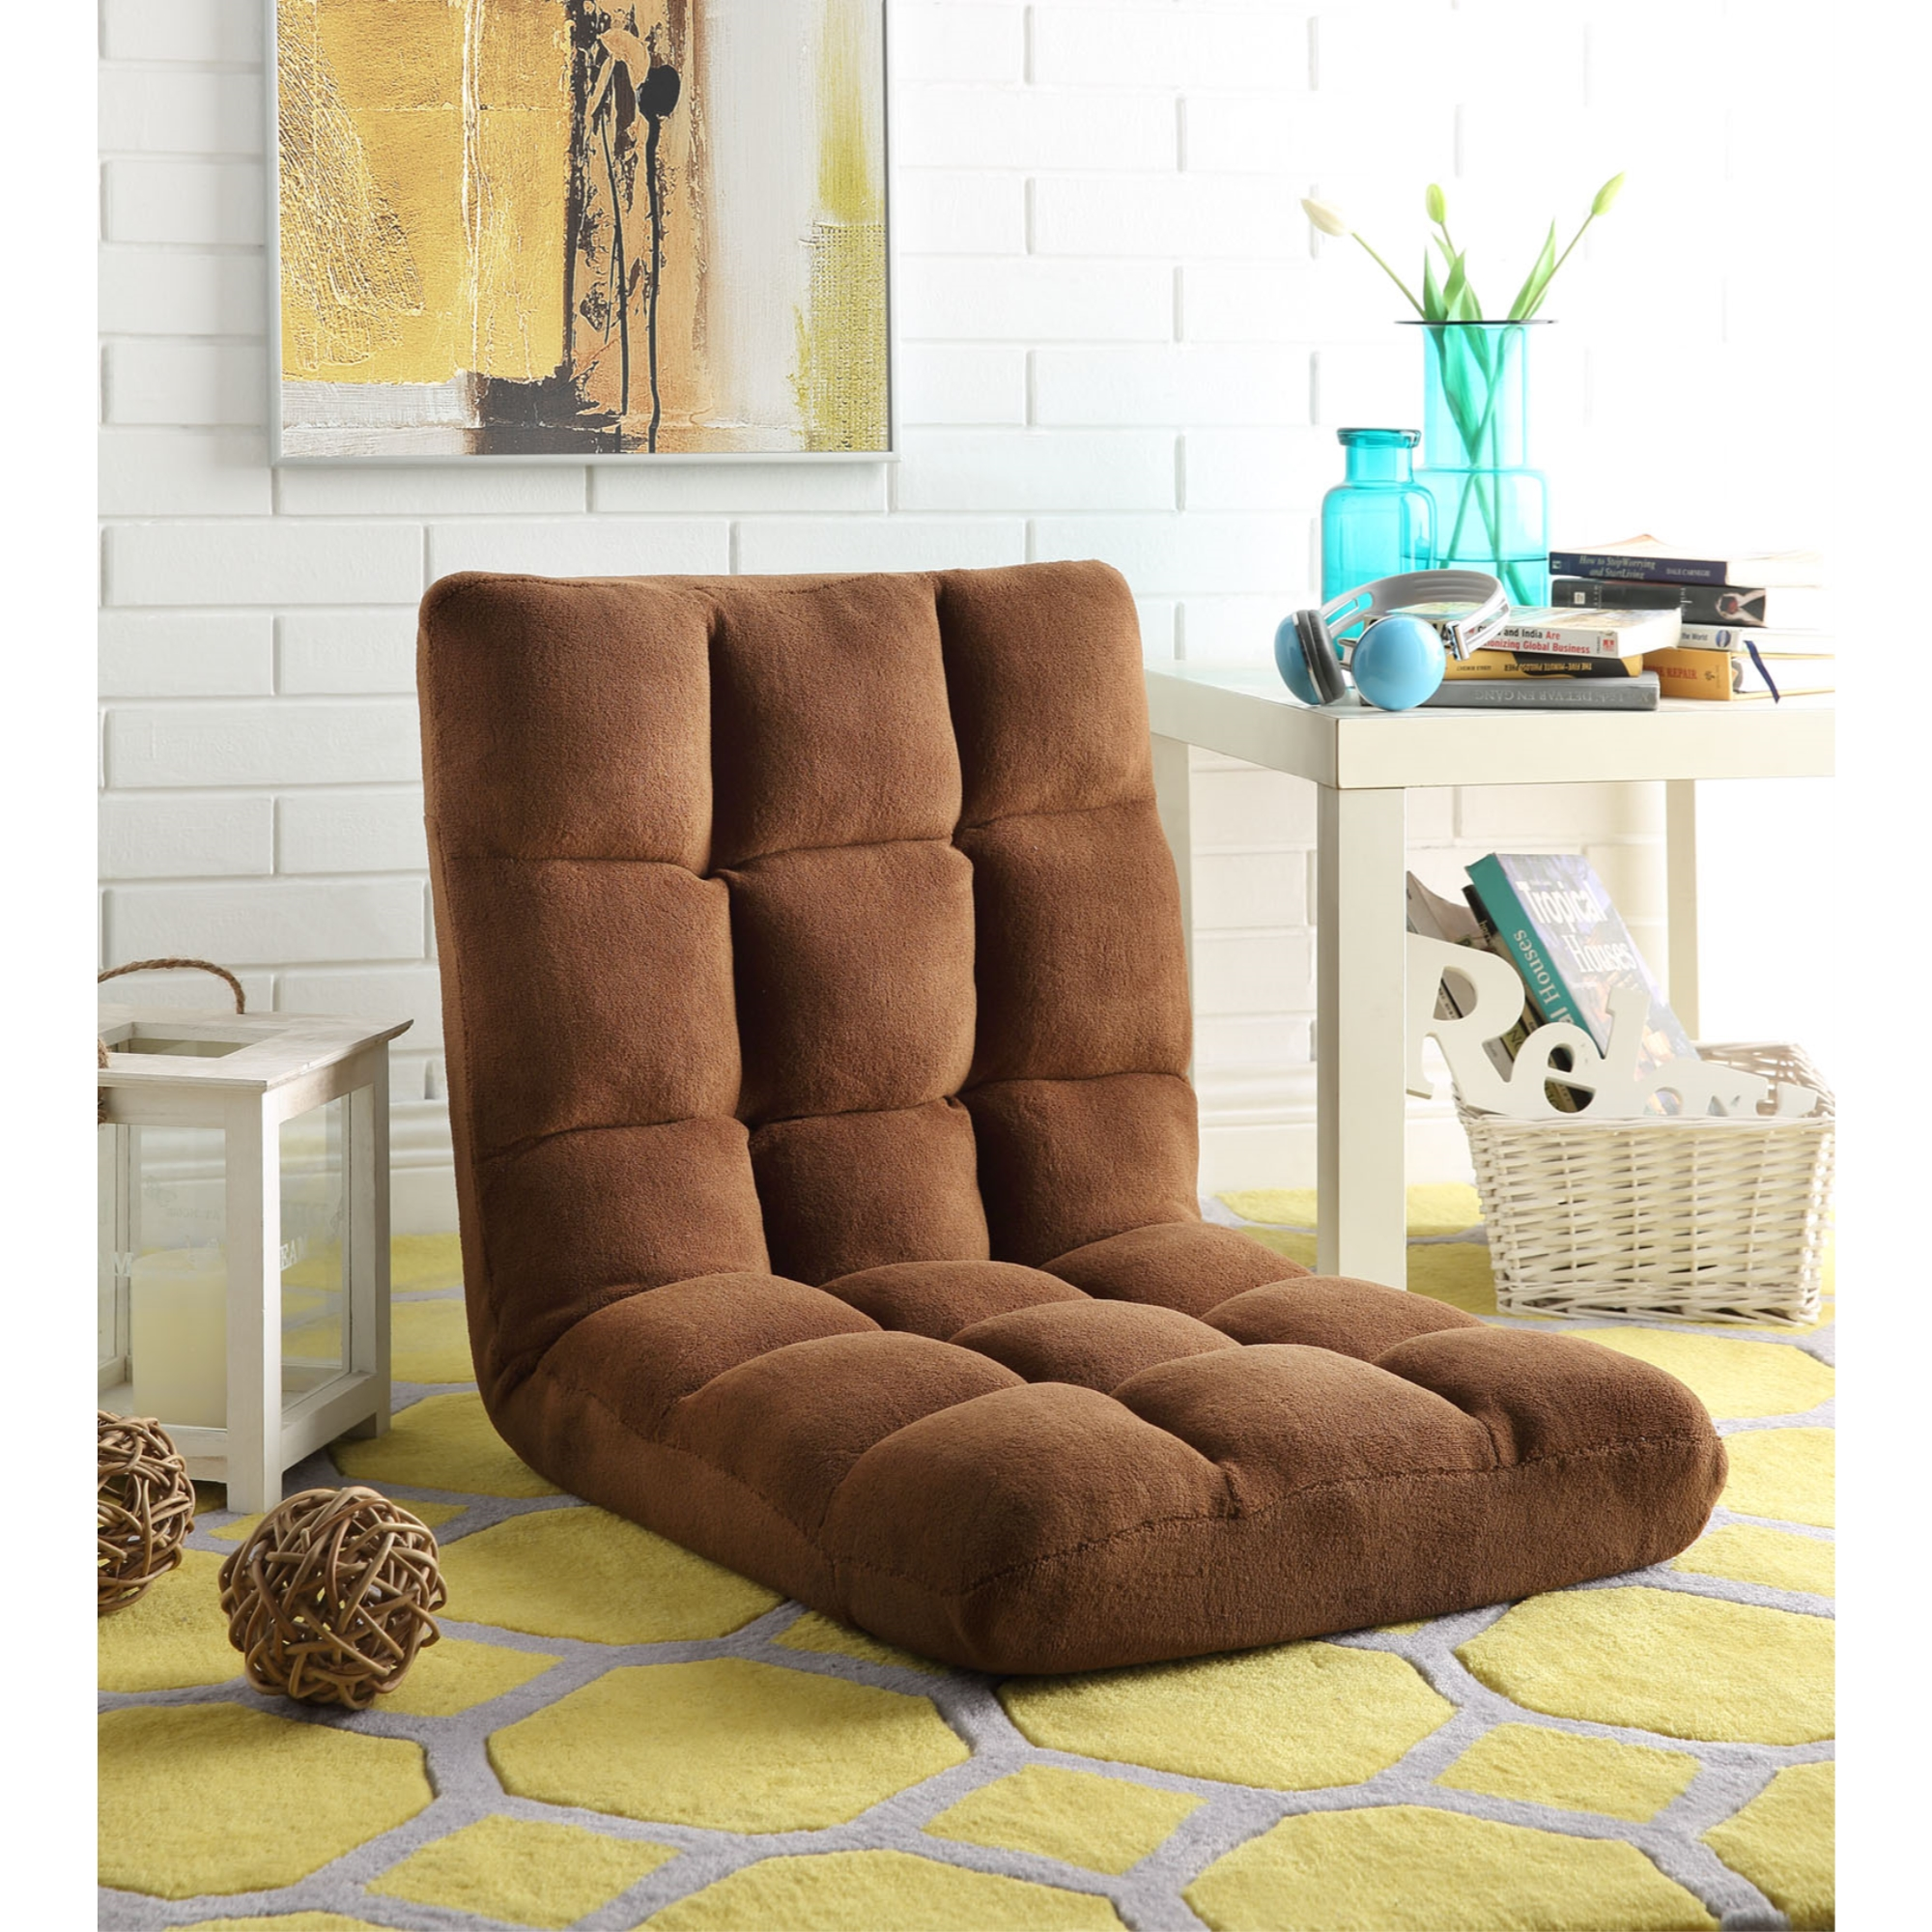 Loungie Brown Microplush Chair Foam Filling Steel Tube Frame